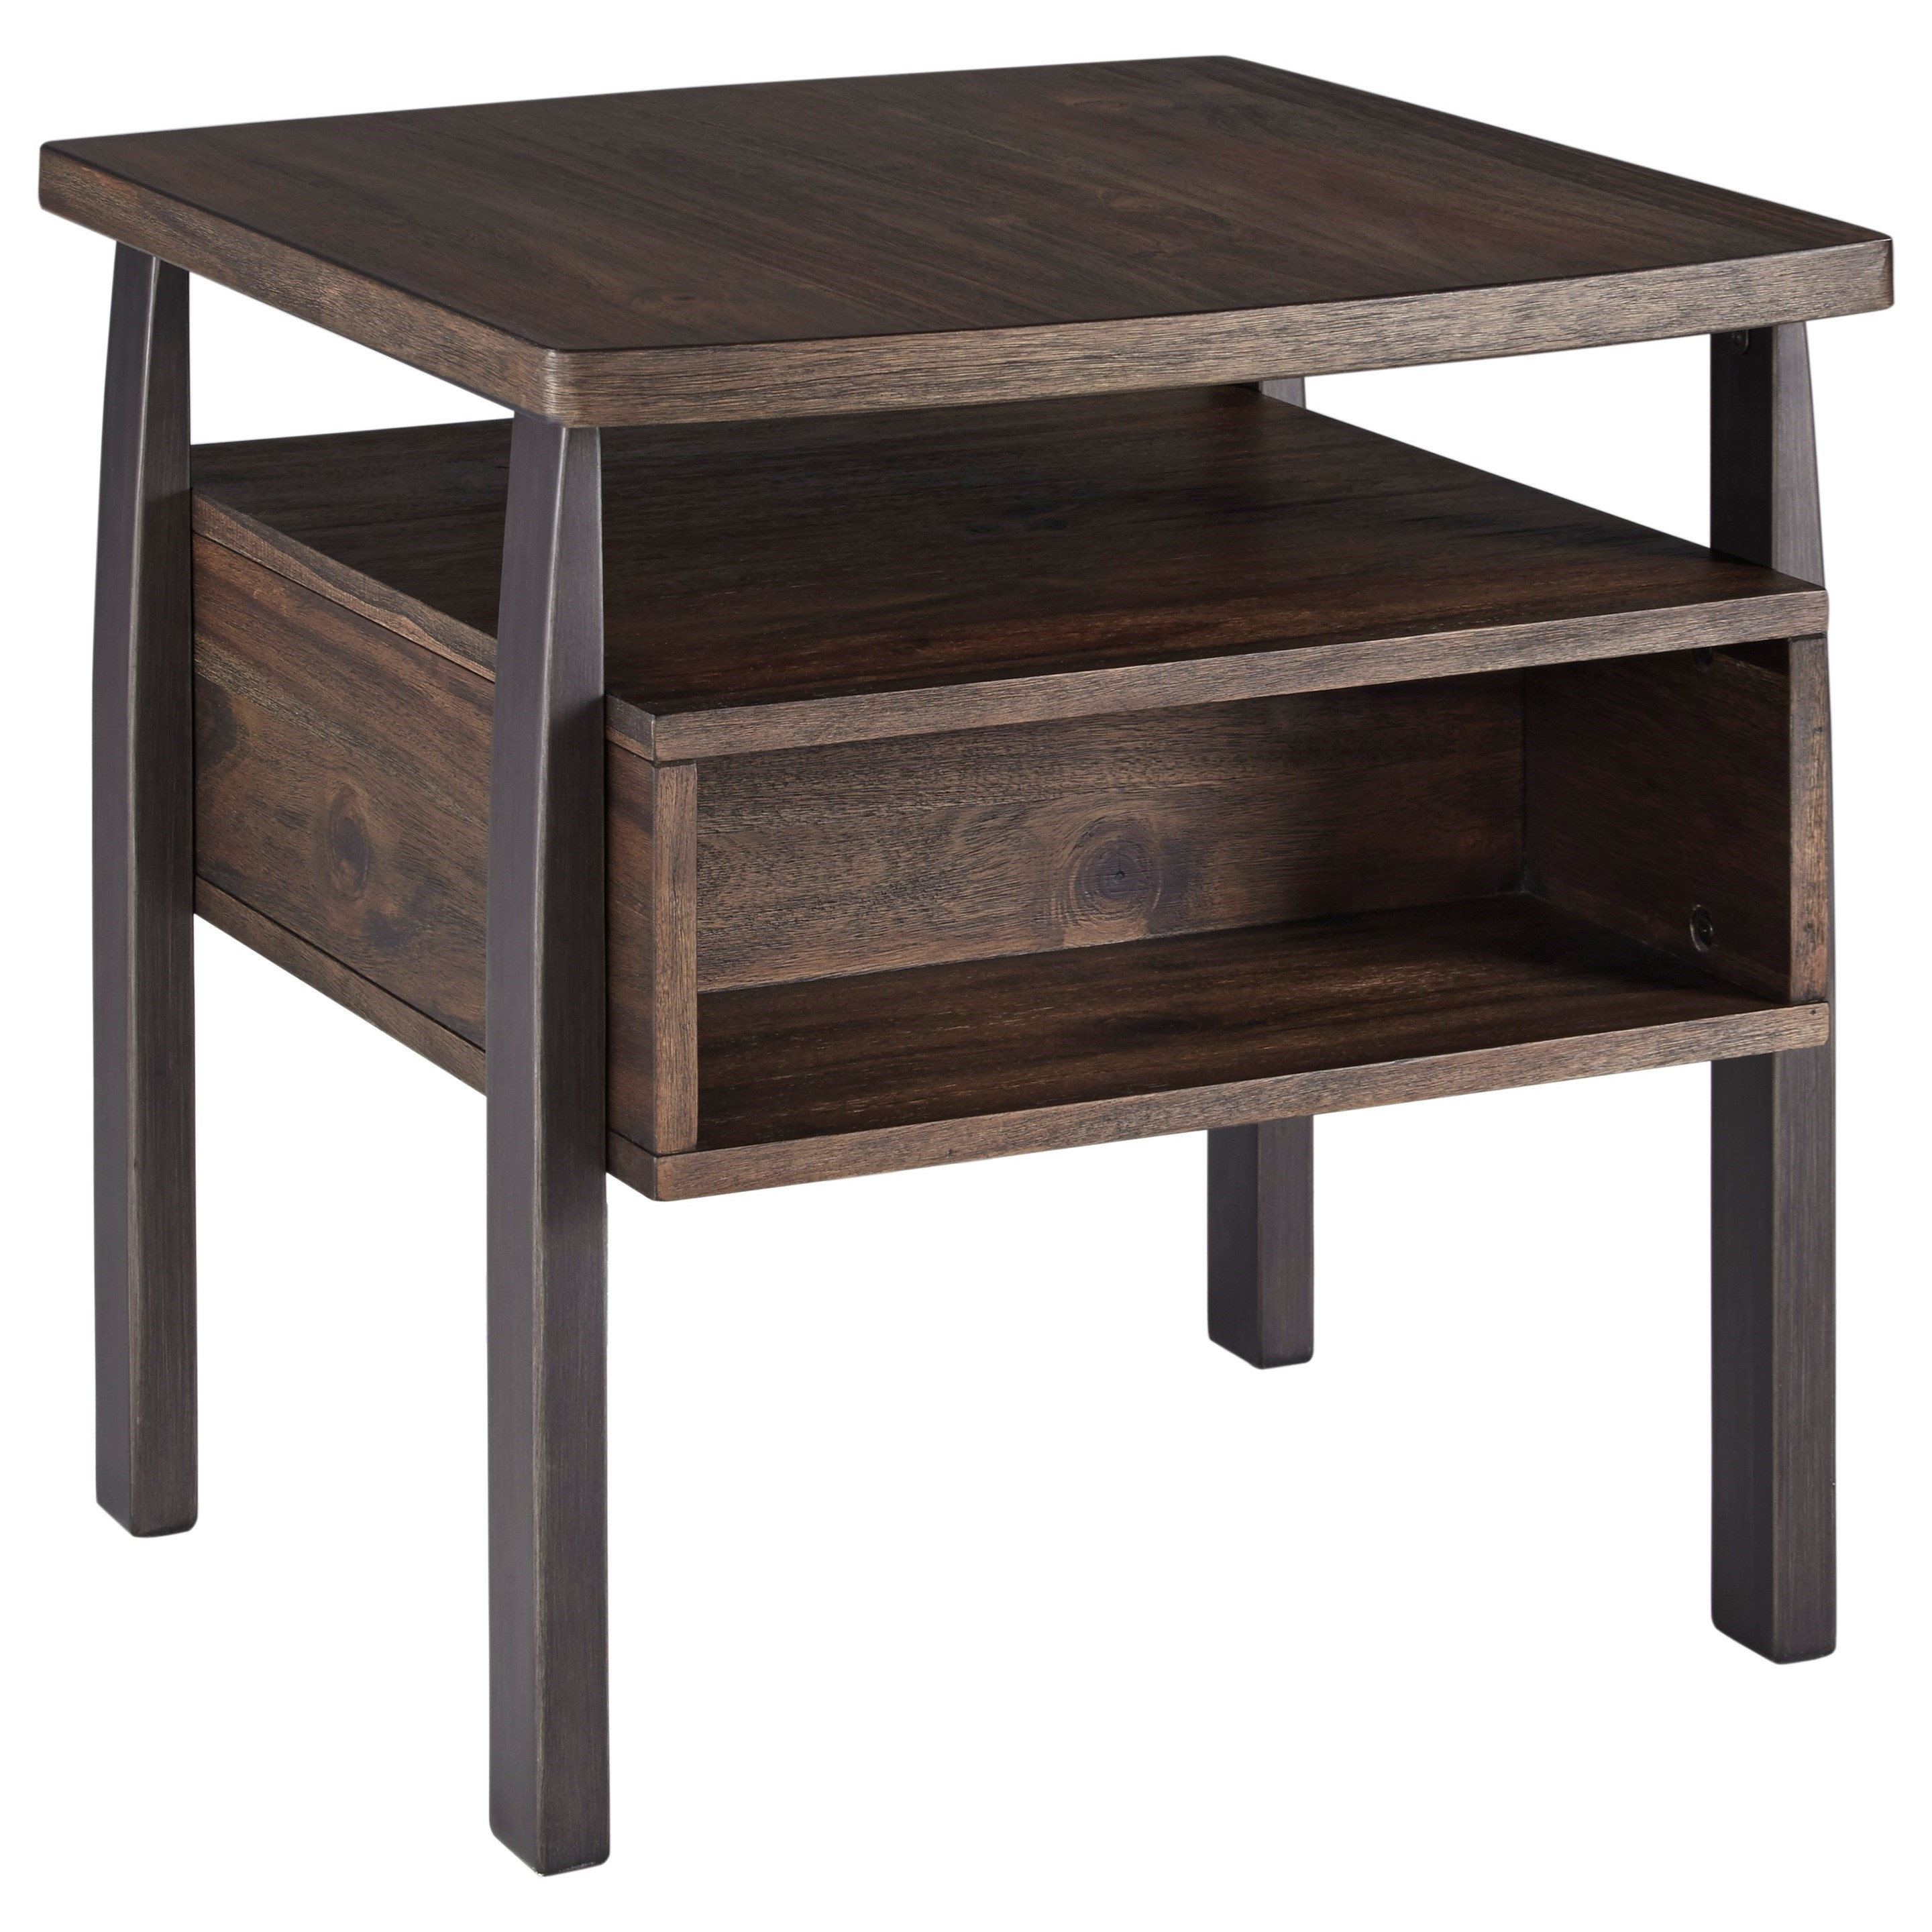 Vailbry Rectangular End Table by Signature Design by Ashley at Northeast Factory Direct